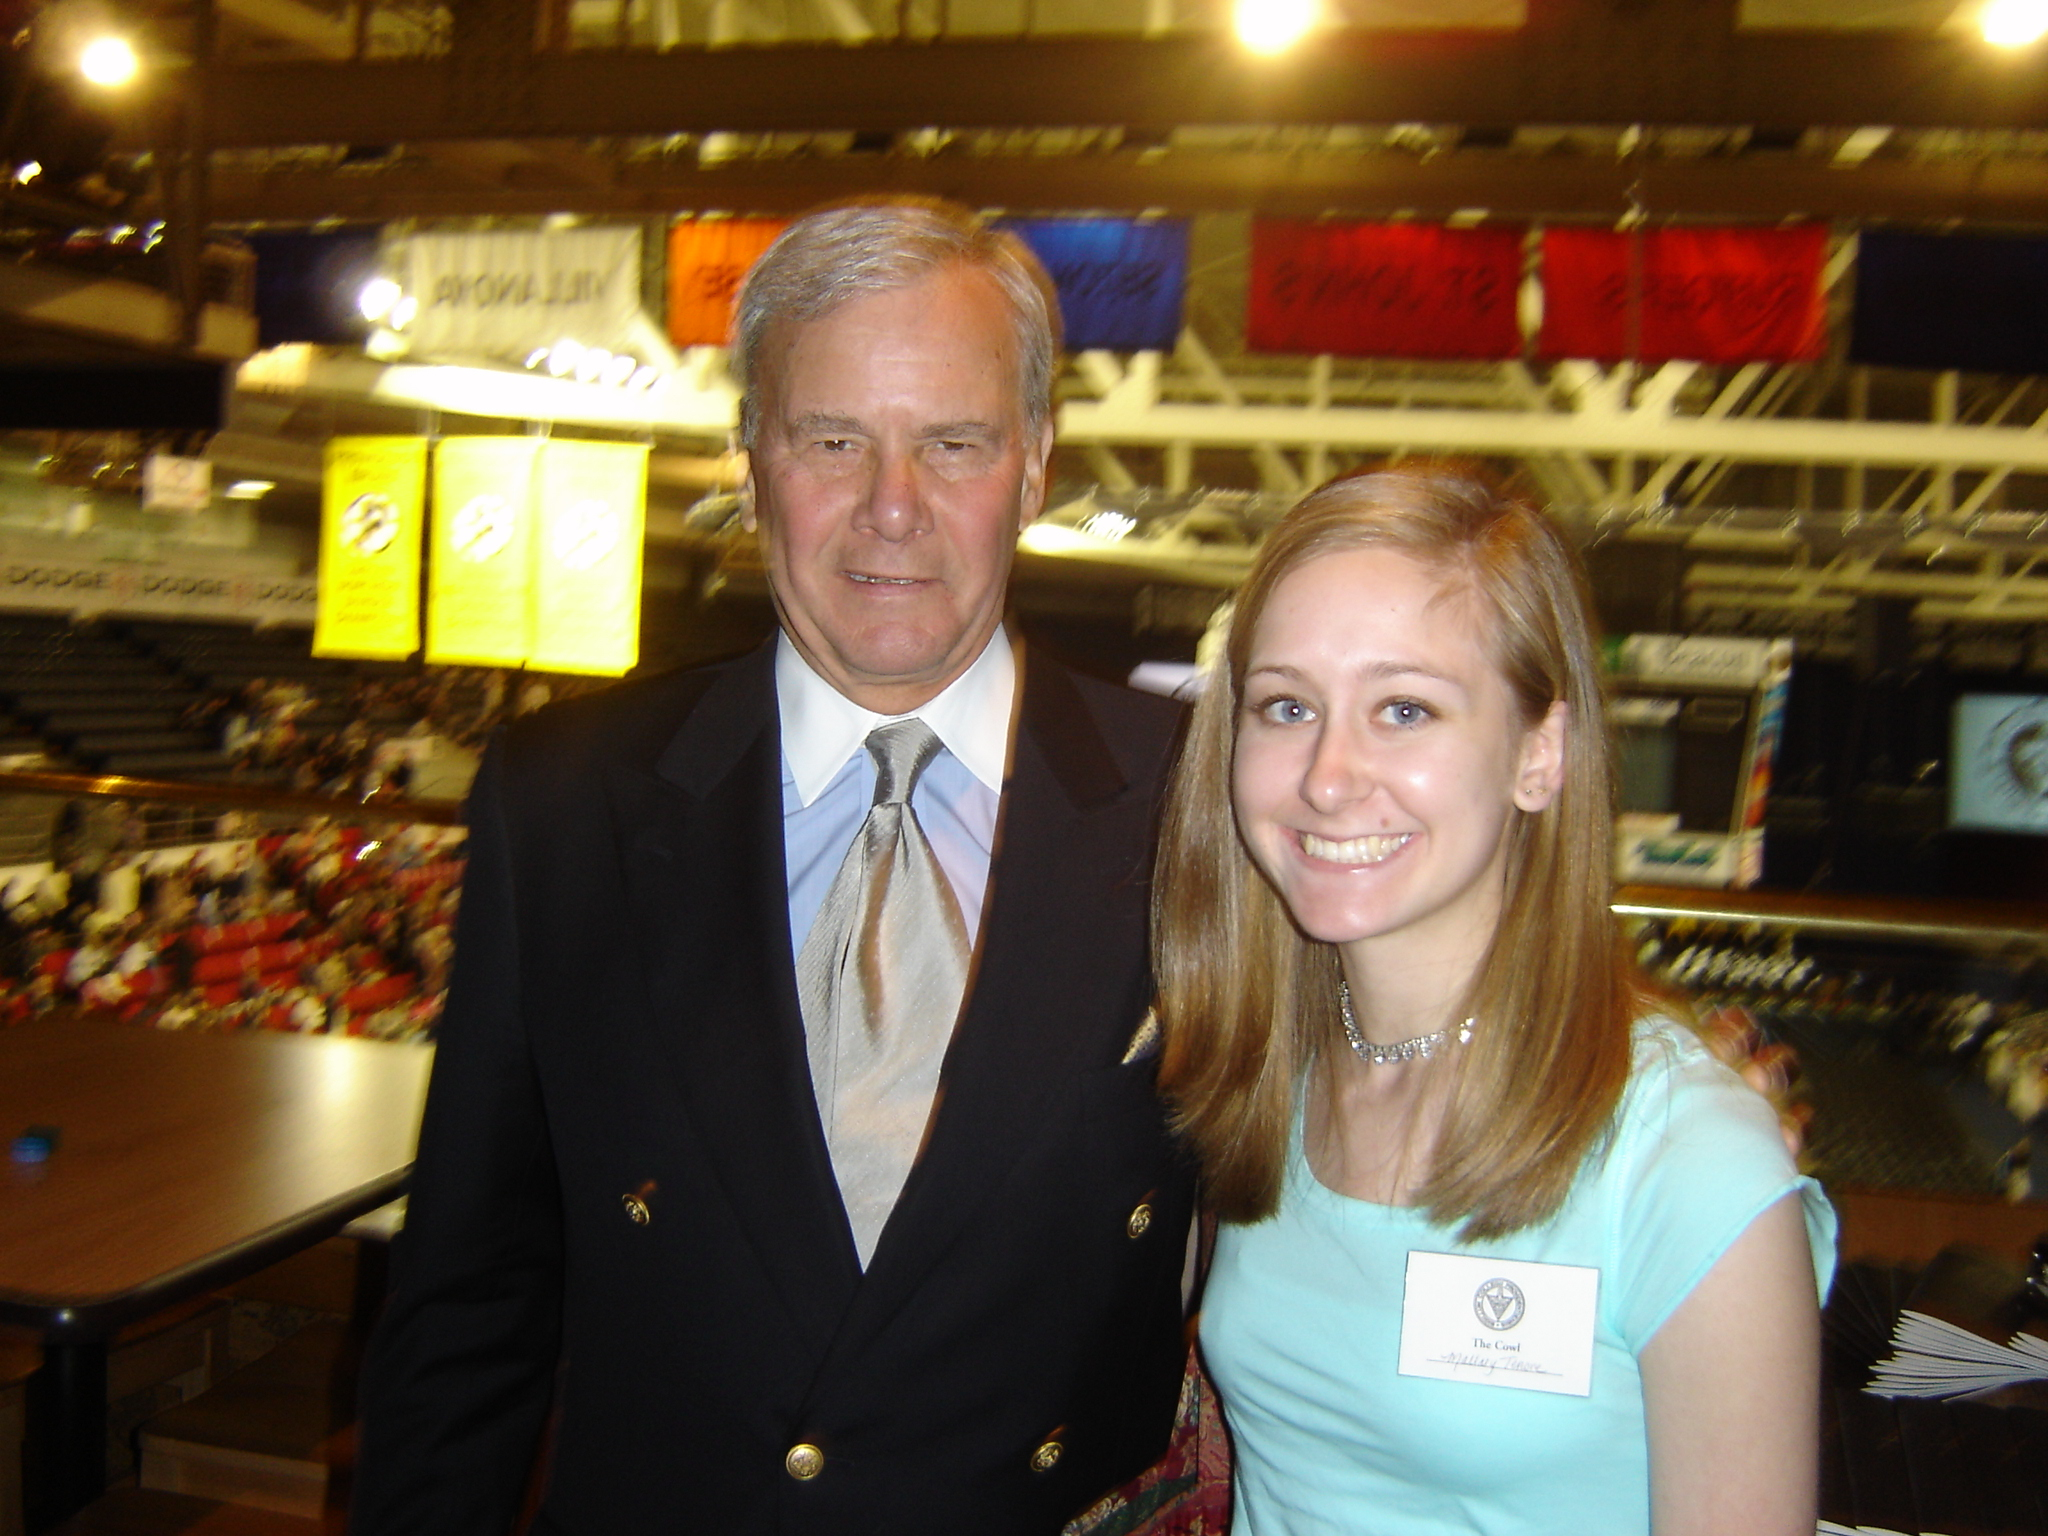 Just for fun, I'm posting this photo of me and Tom Brokaw. It was taken three years ago when Brokaw gave the commencement speech at my alma mater, Providence College.